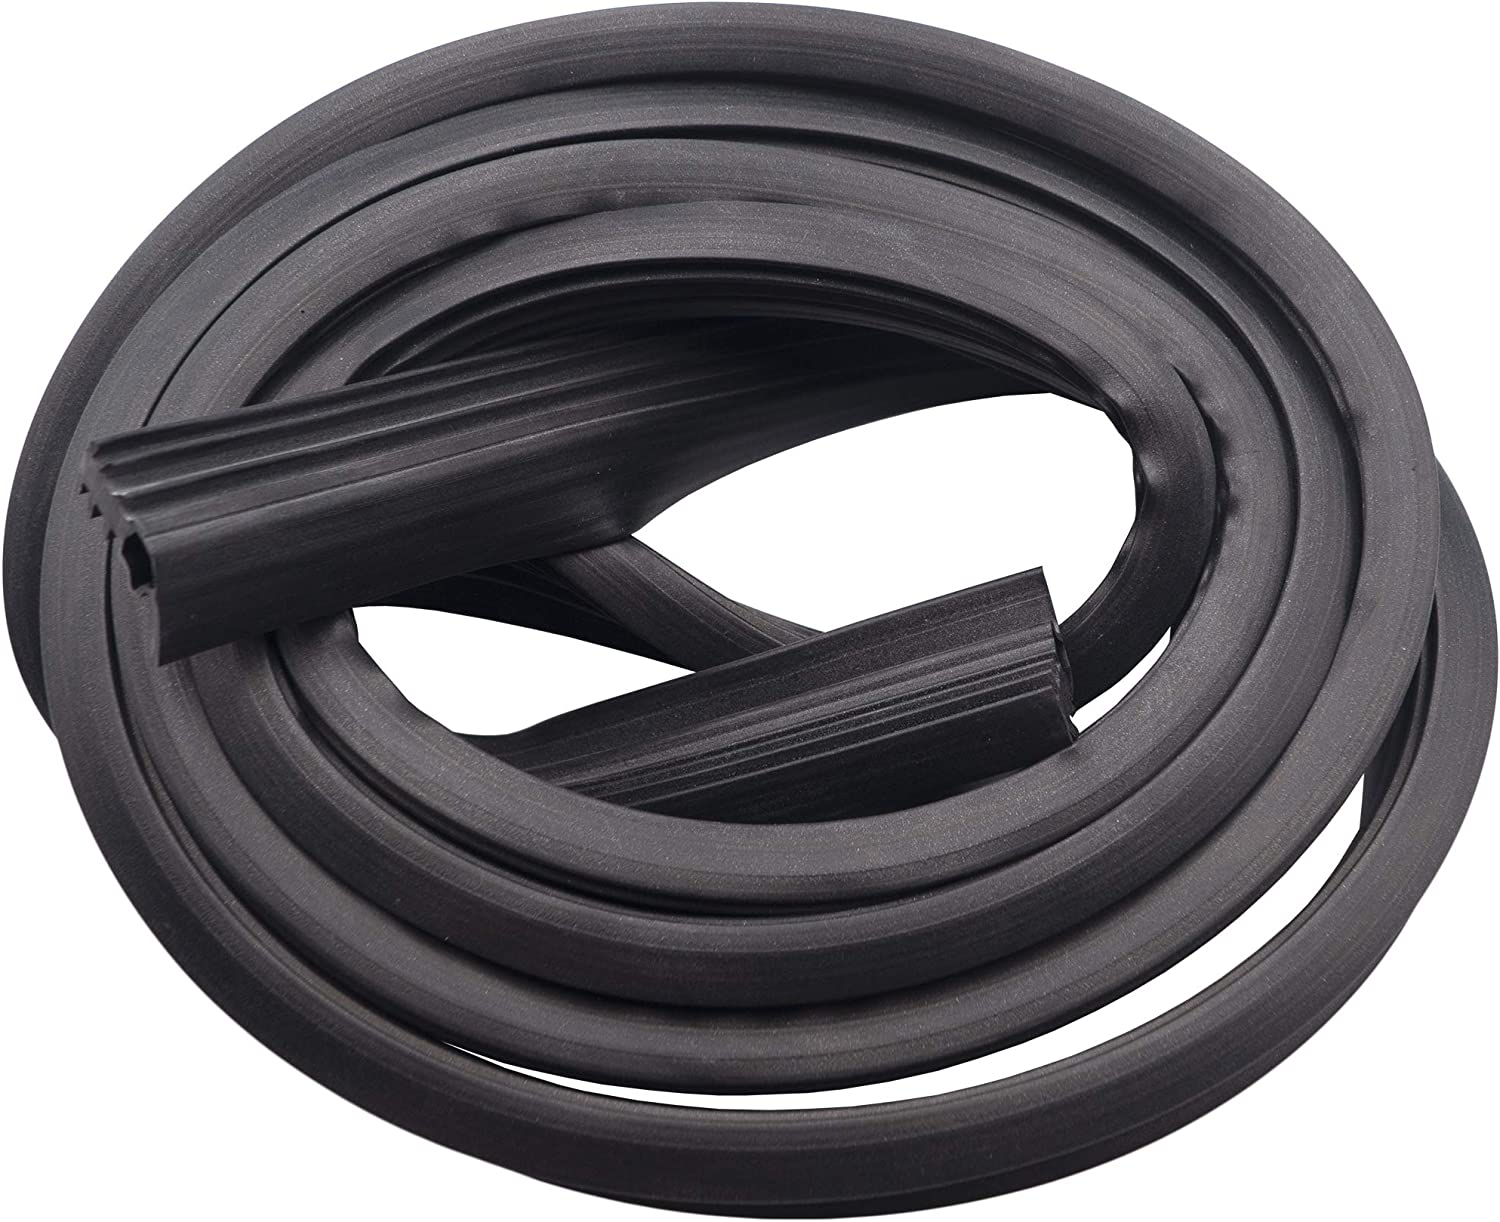 Supplying Demand DD62-00043A Dishwasher Tub Seal Gasket Compatible With Samsung